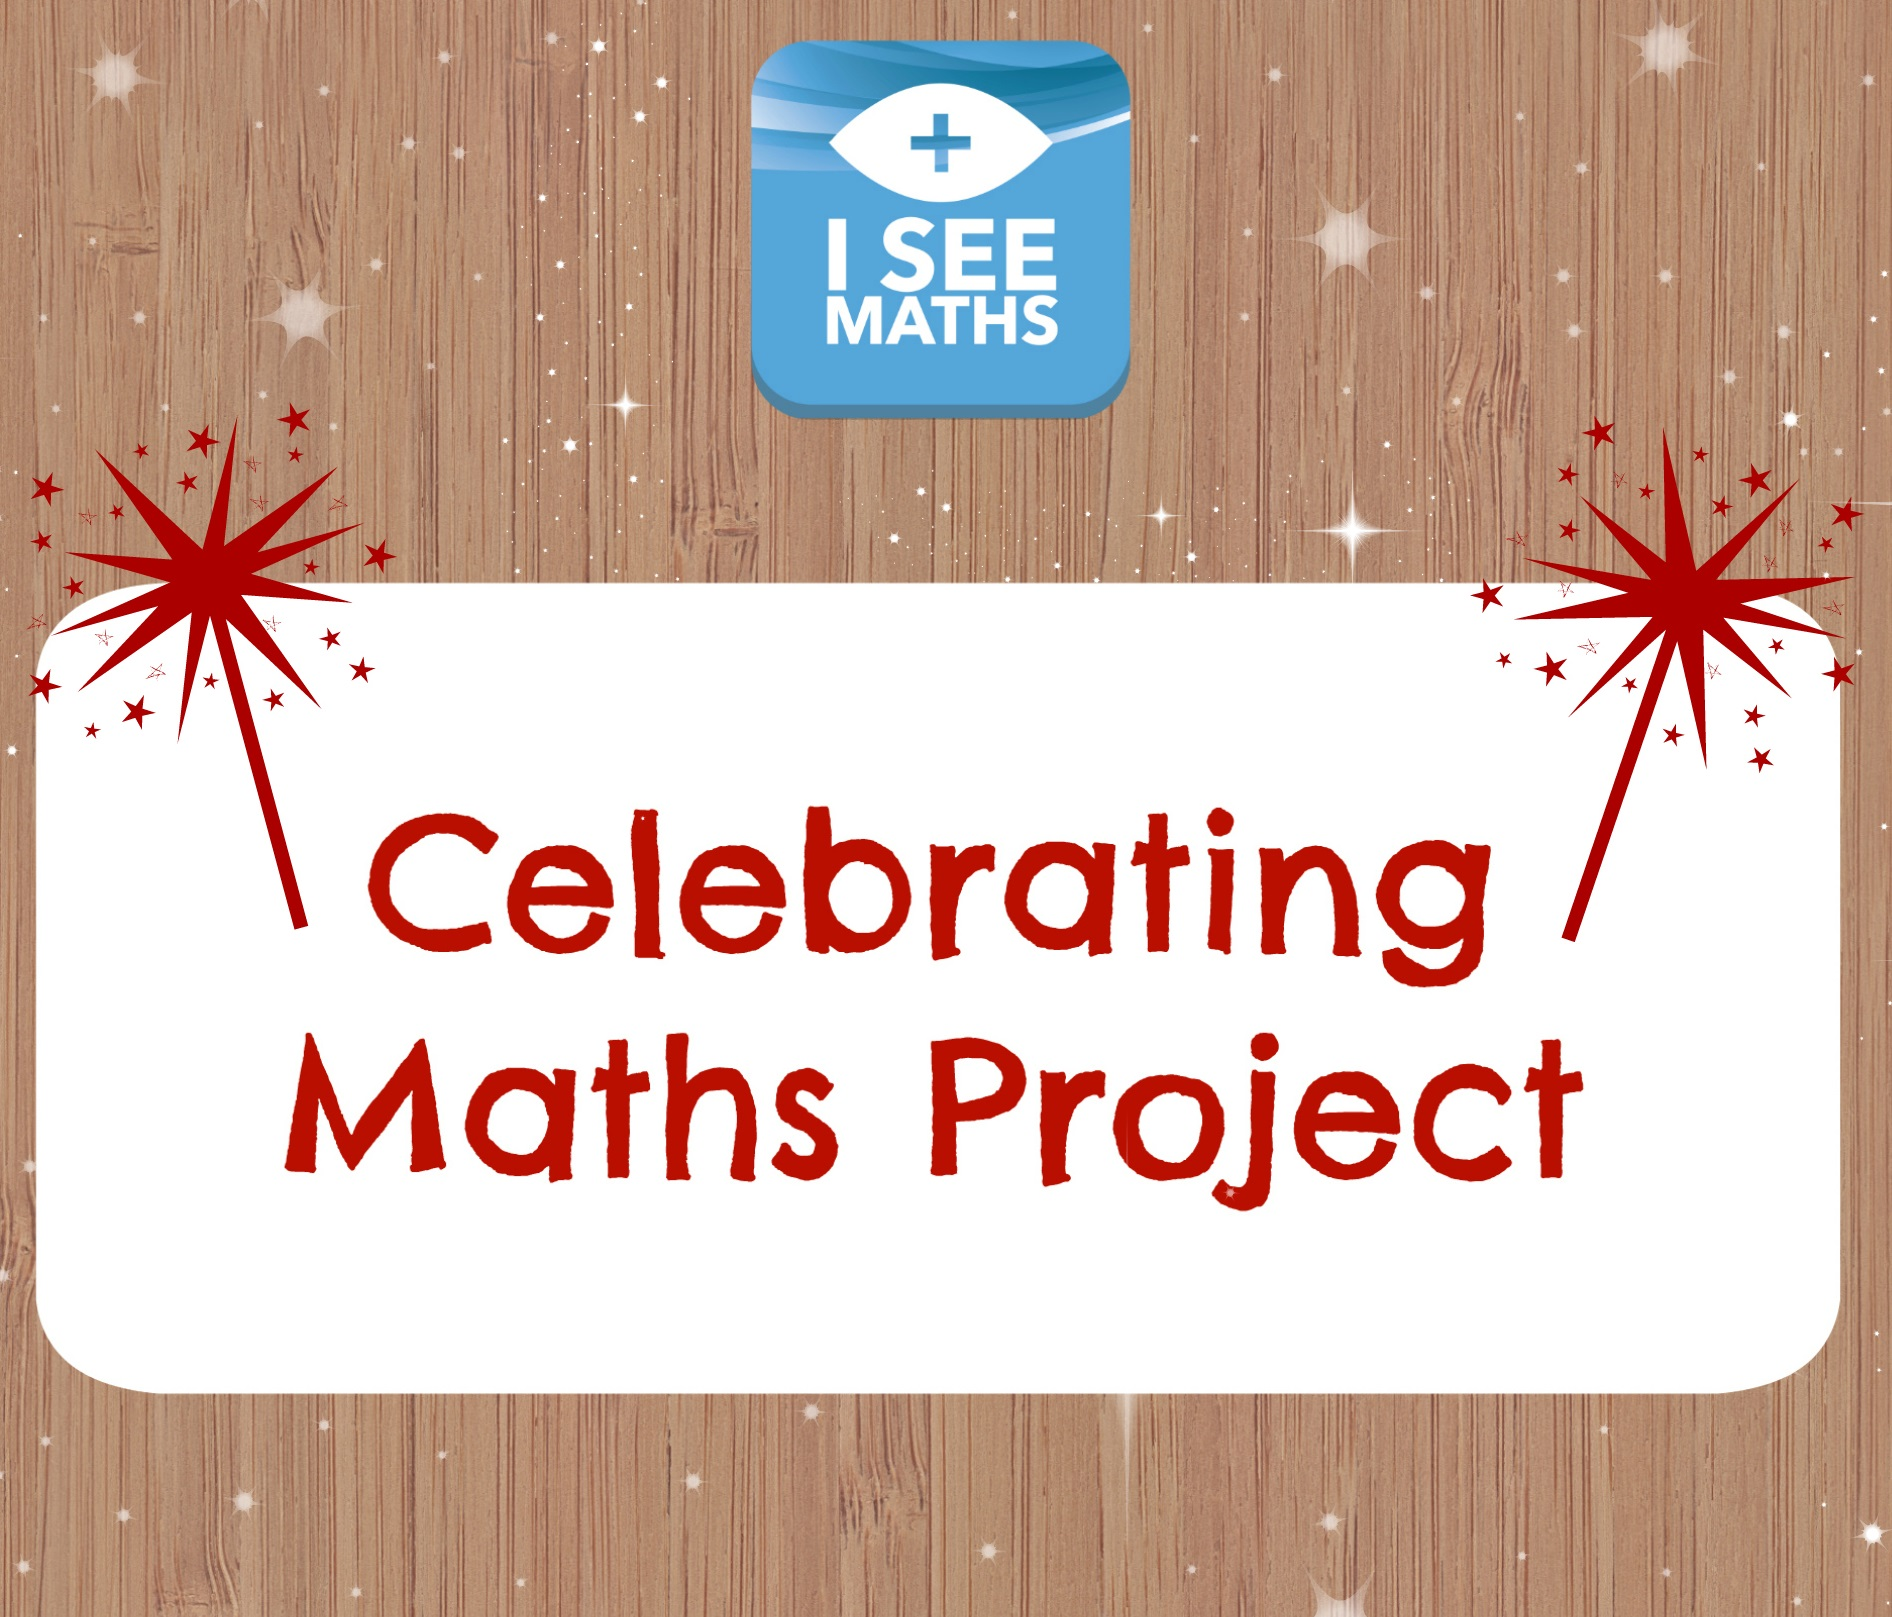 Celebrating Maths - I See Maths